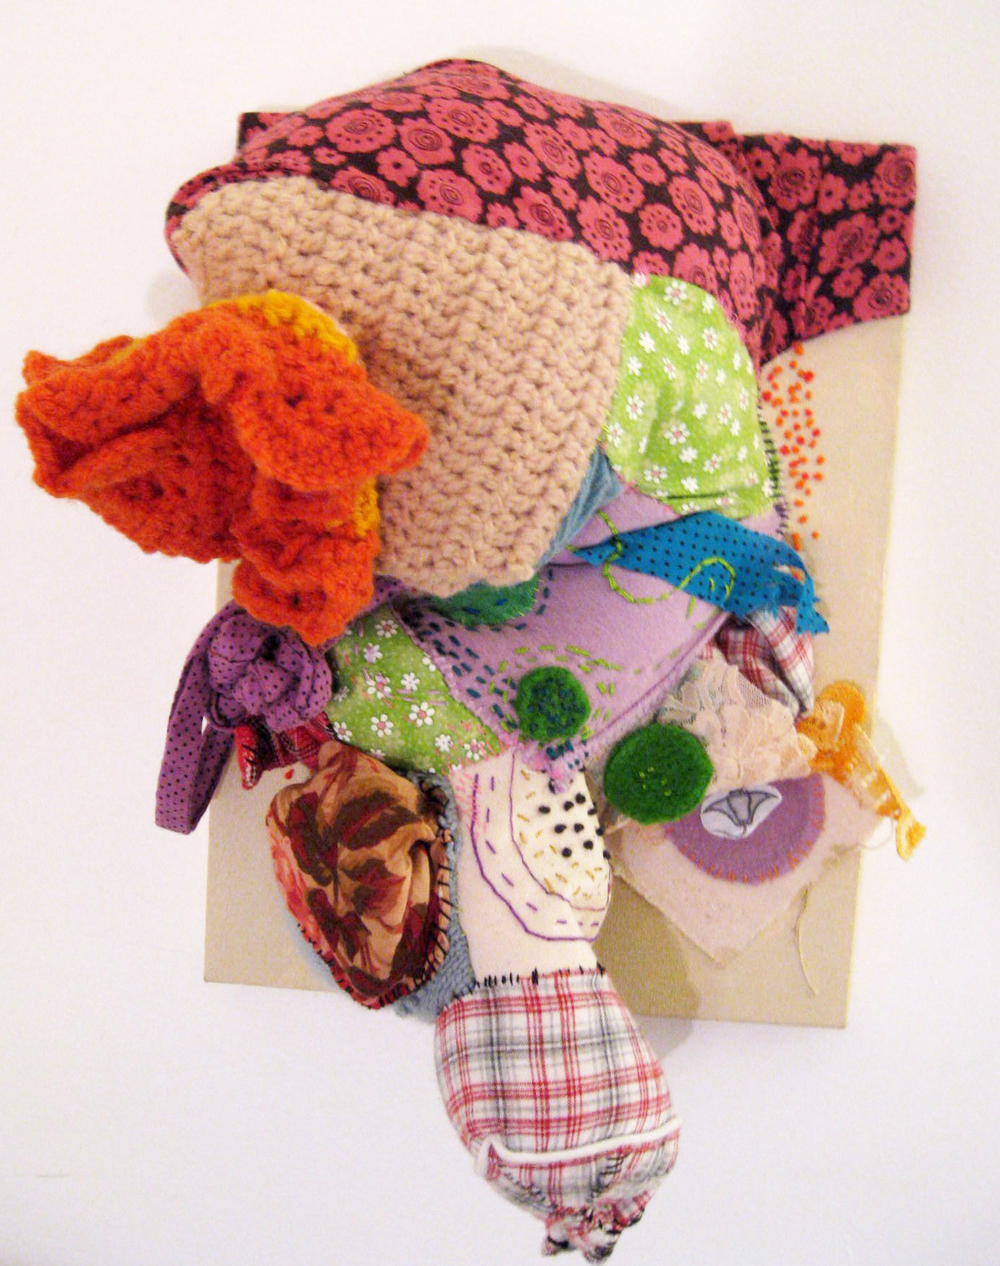 "The Soft Sting,  2010. Fabric, yarn, clothing, felt, paper, thread, embroidery floss, fiberfill, acrylic on canvas. 15""    x 10.5 ""    x 7.5 "". Courtesy of the artist."